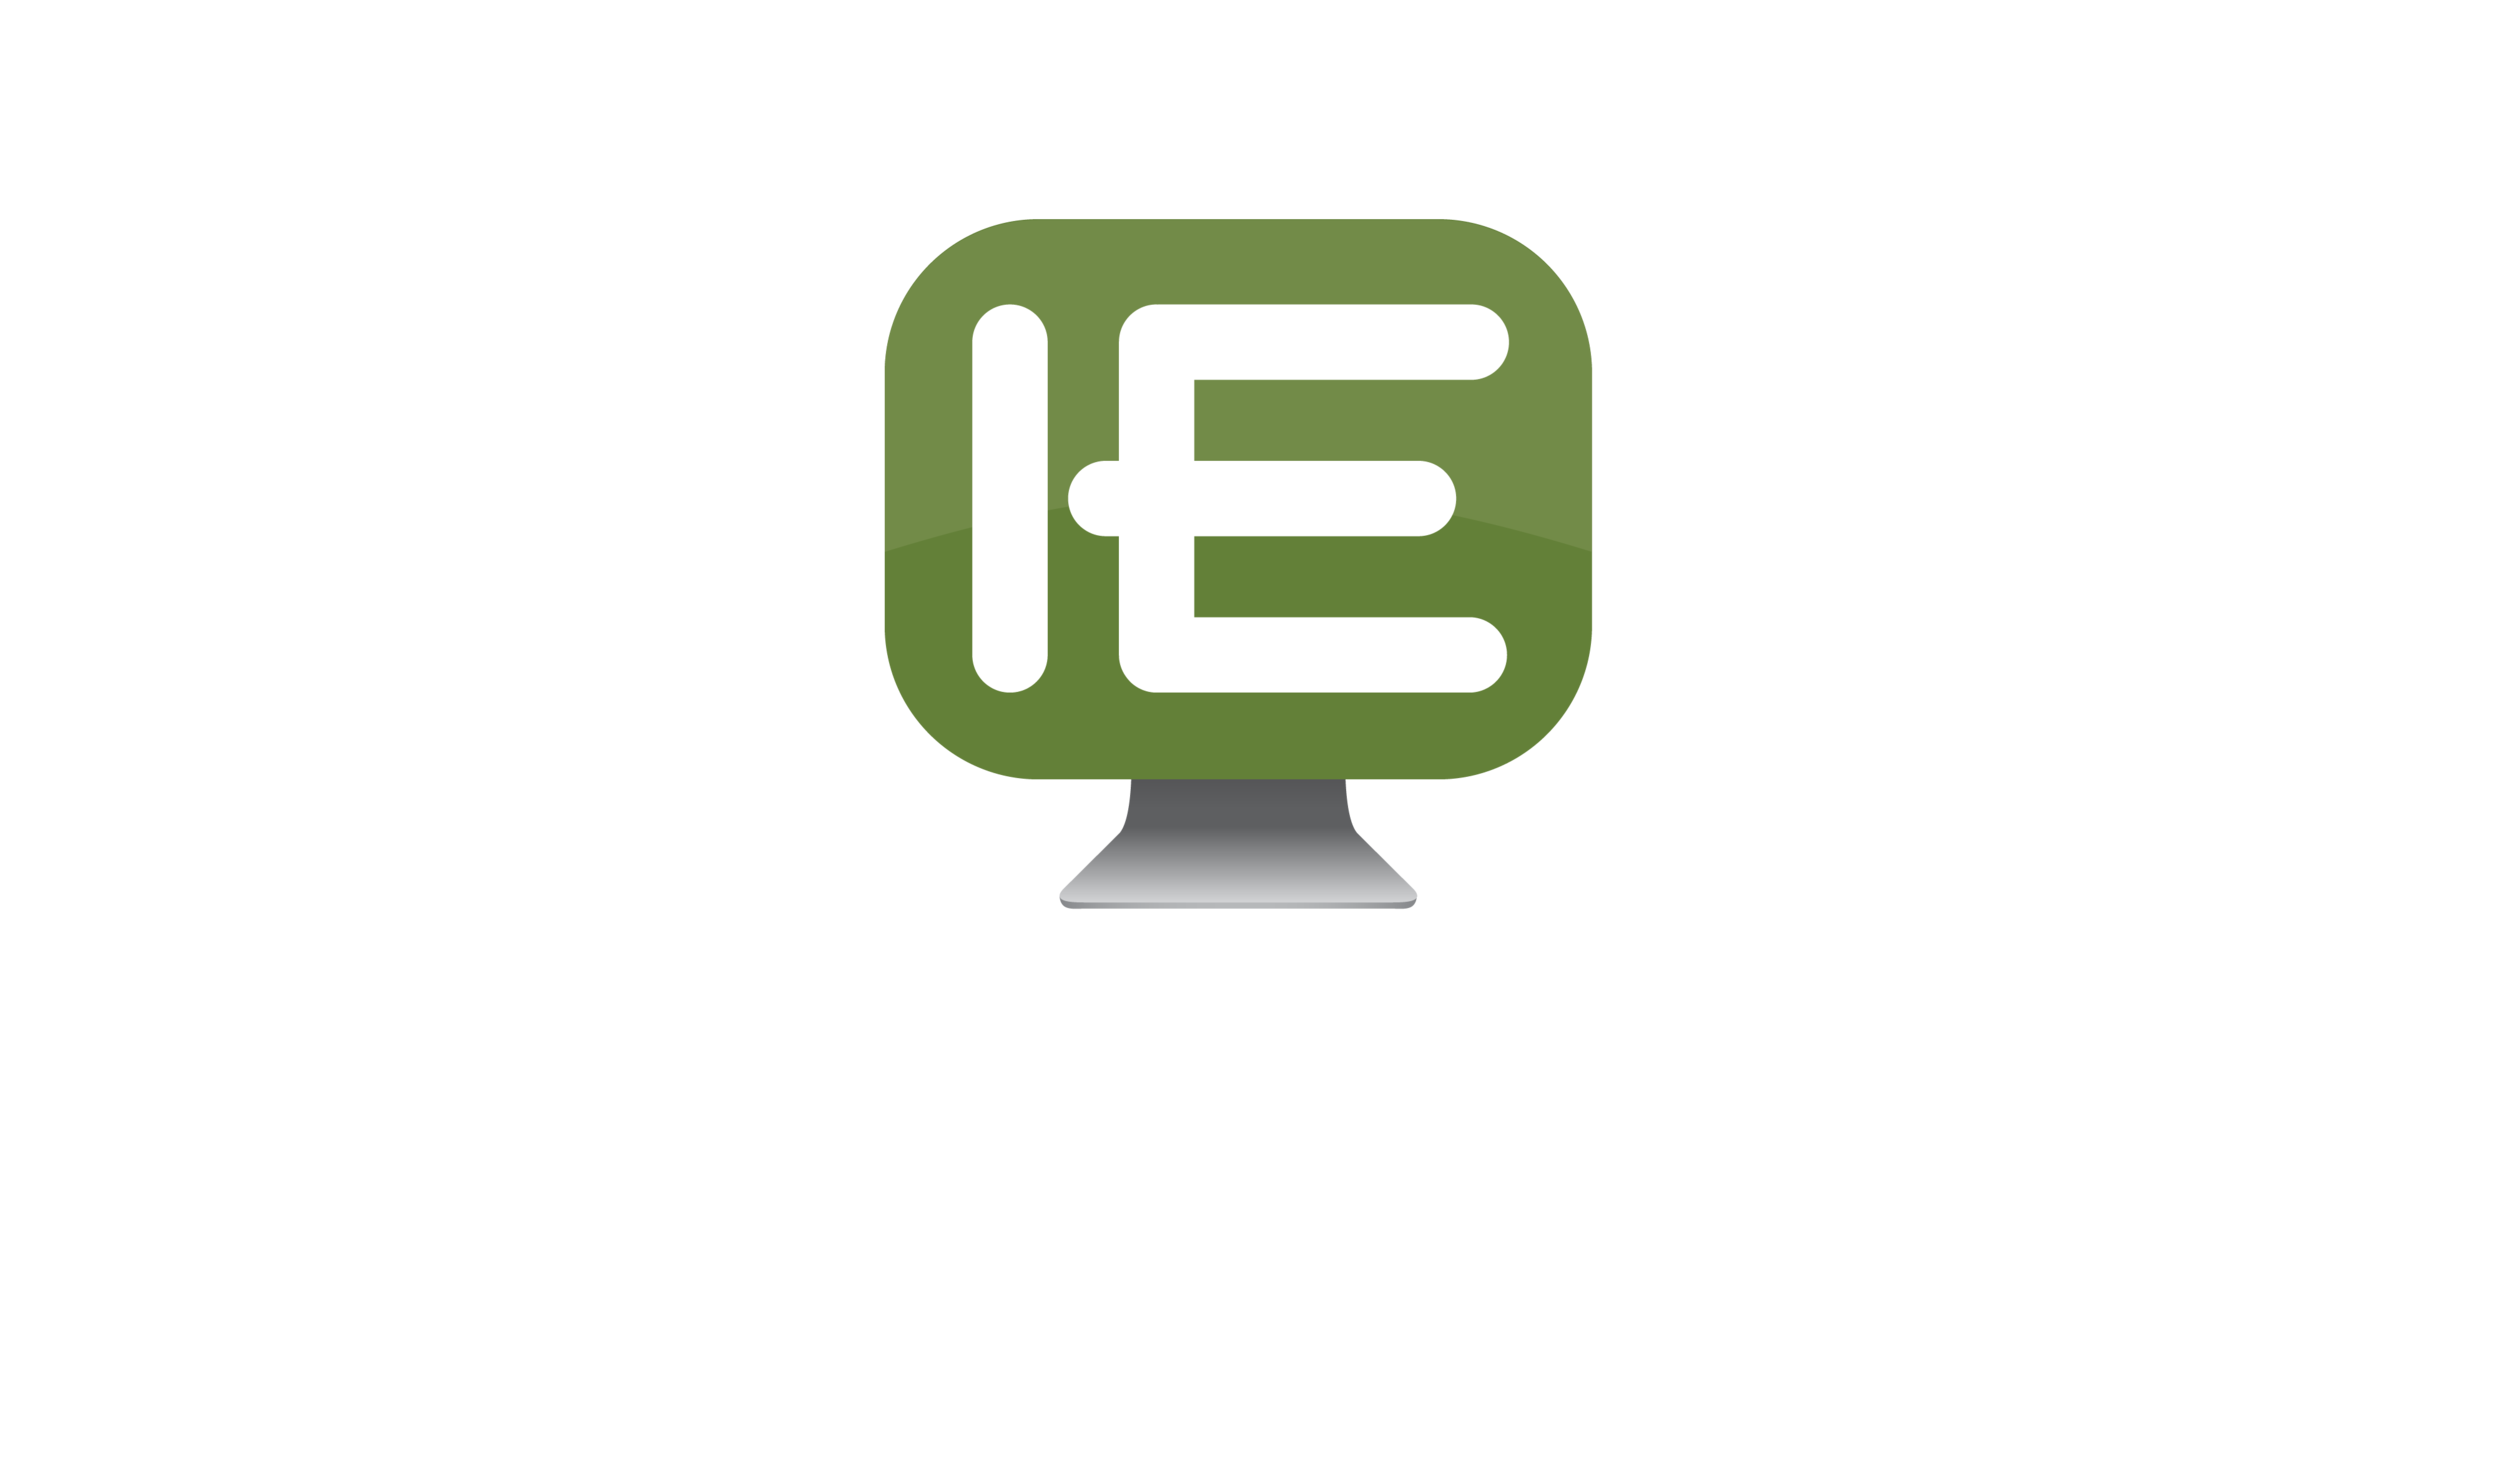 IE Web Design (white letters.trans bkgd).png